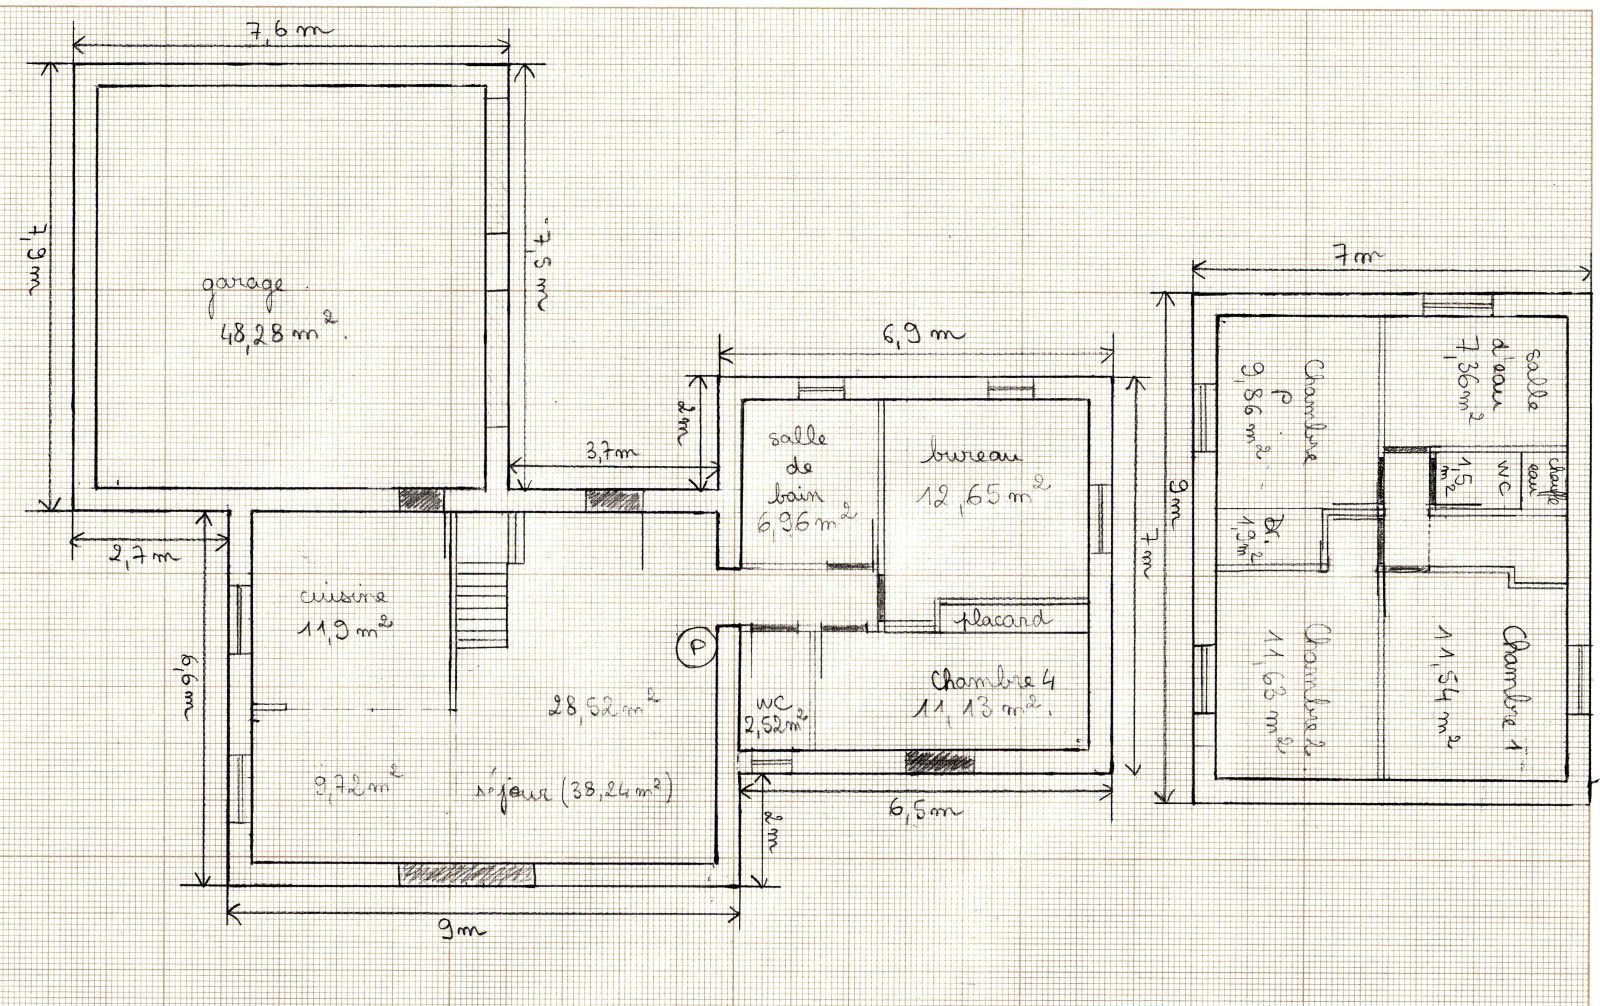 Gratuit architecte colorier dessin dessiner un plan de for Dessiner plan maison